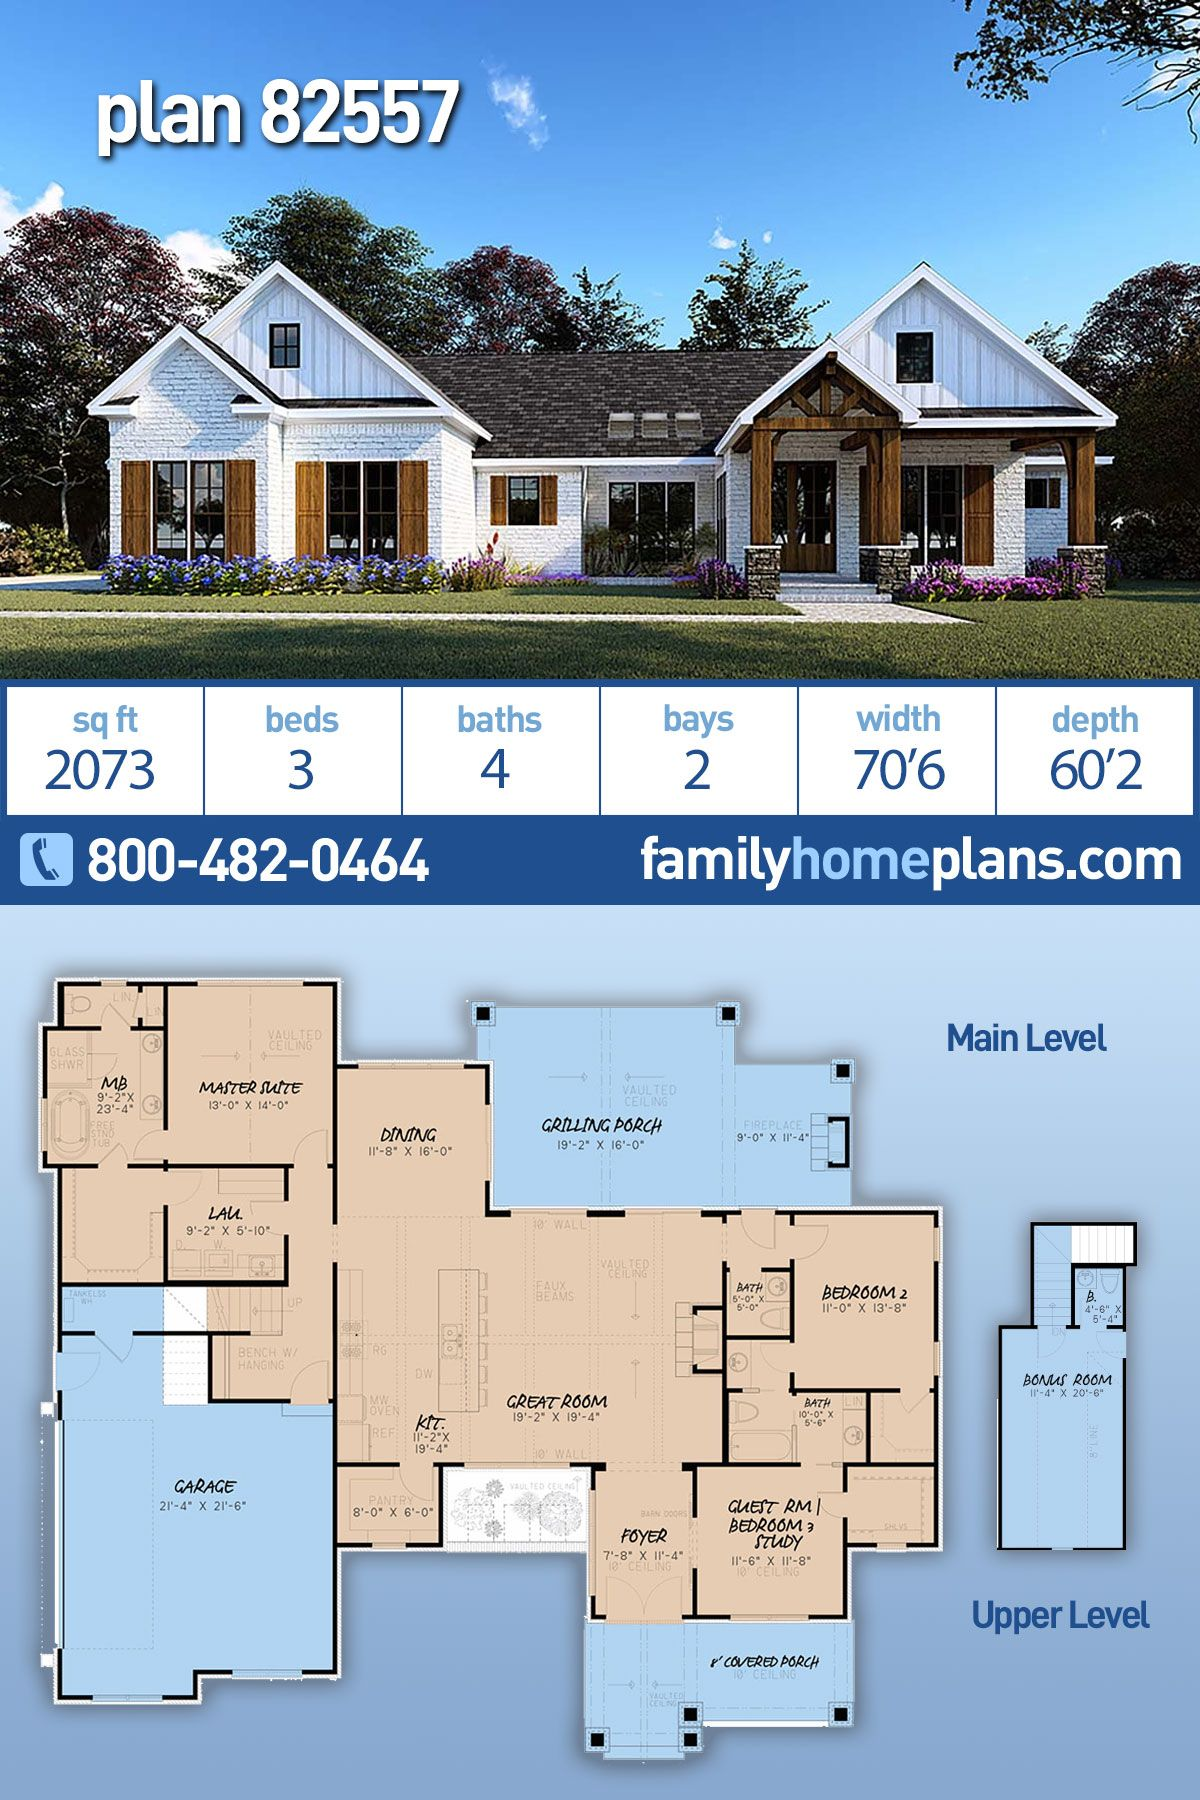 One Story Style House Plan 82557 With 3 Bed 4 Bath 2 Car Garage Family House Plans House Plans Farmhouse Modern Ranch House